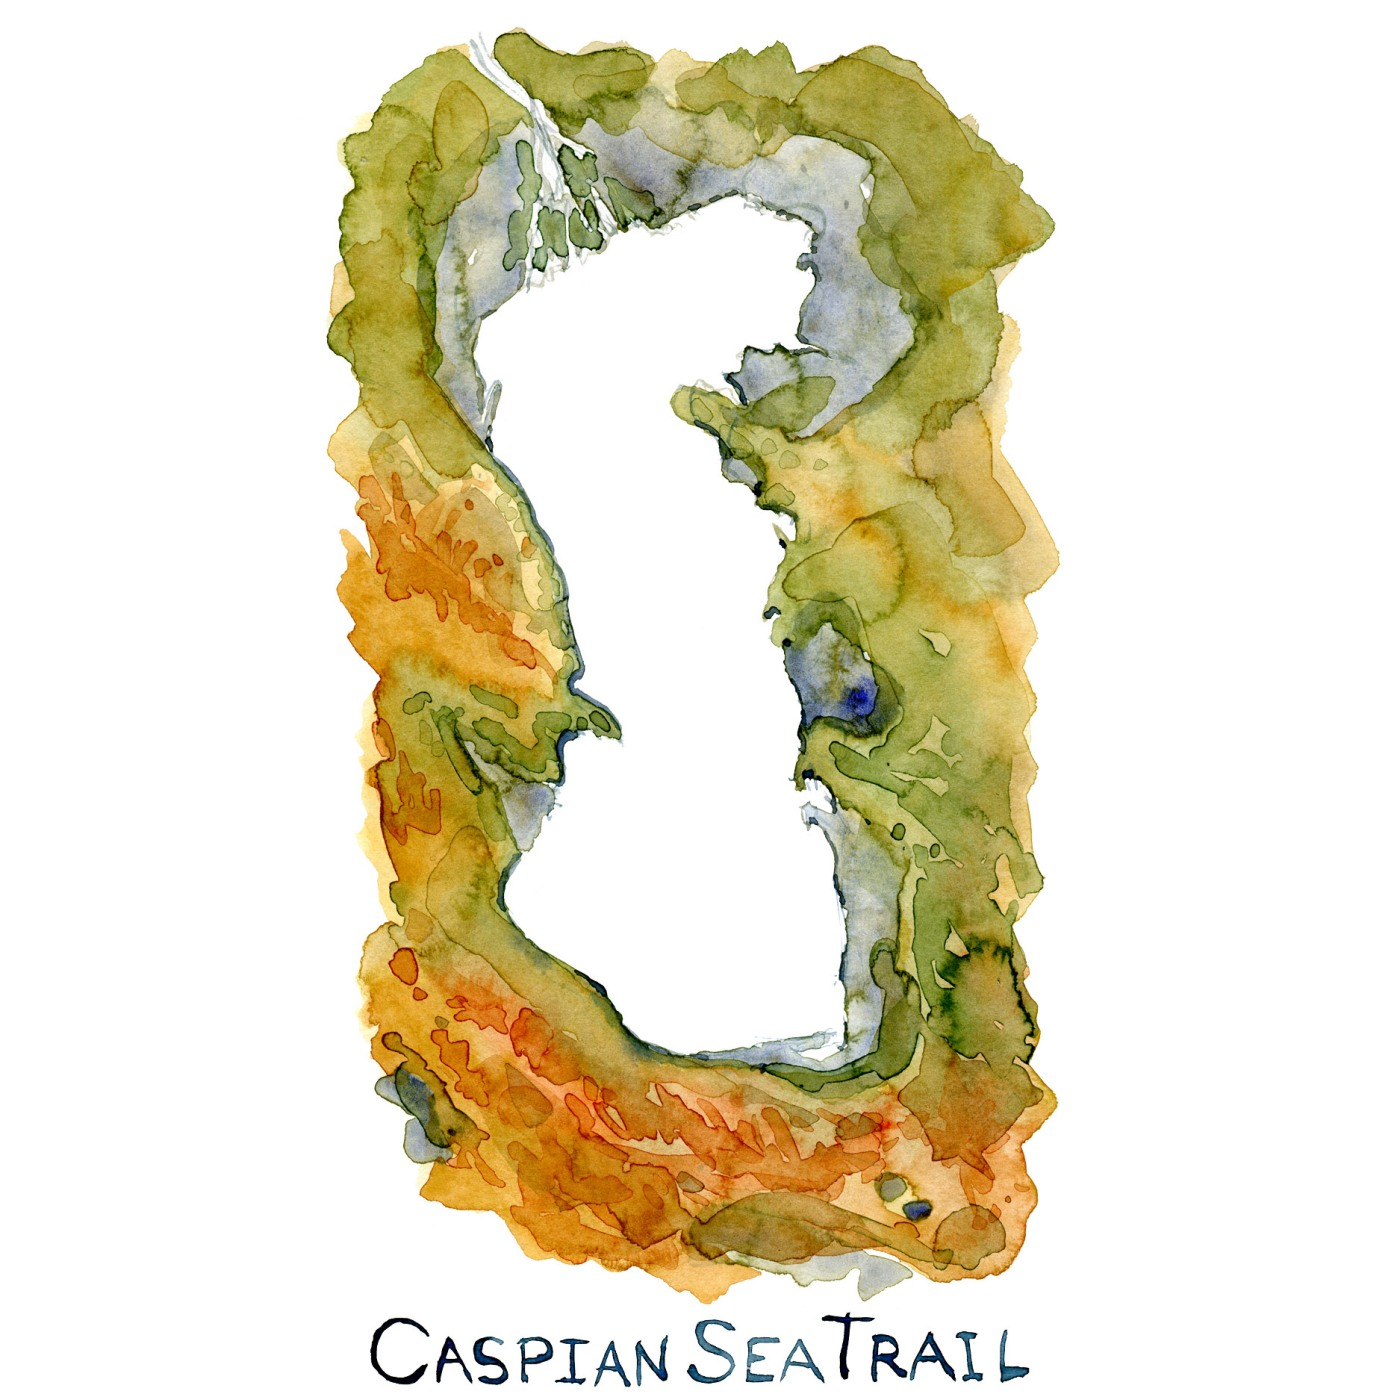 Watercolor map of the coastline around the Caspian Sea. Watercolor by Frits Ahlefeldt